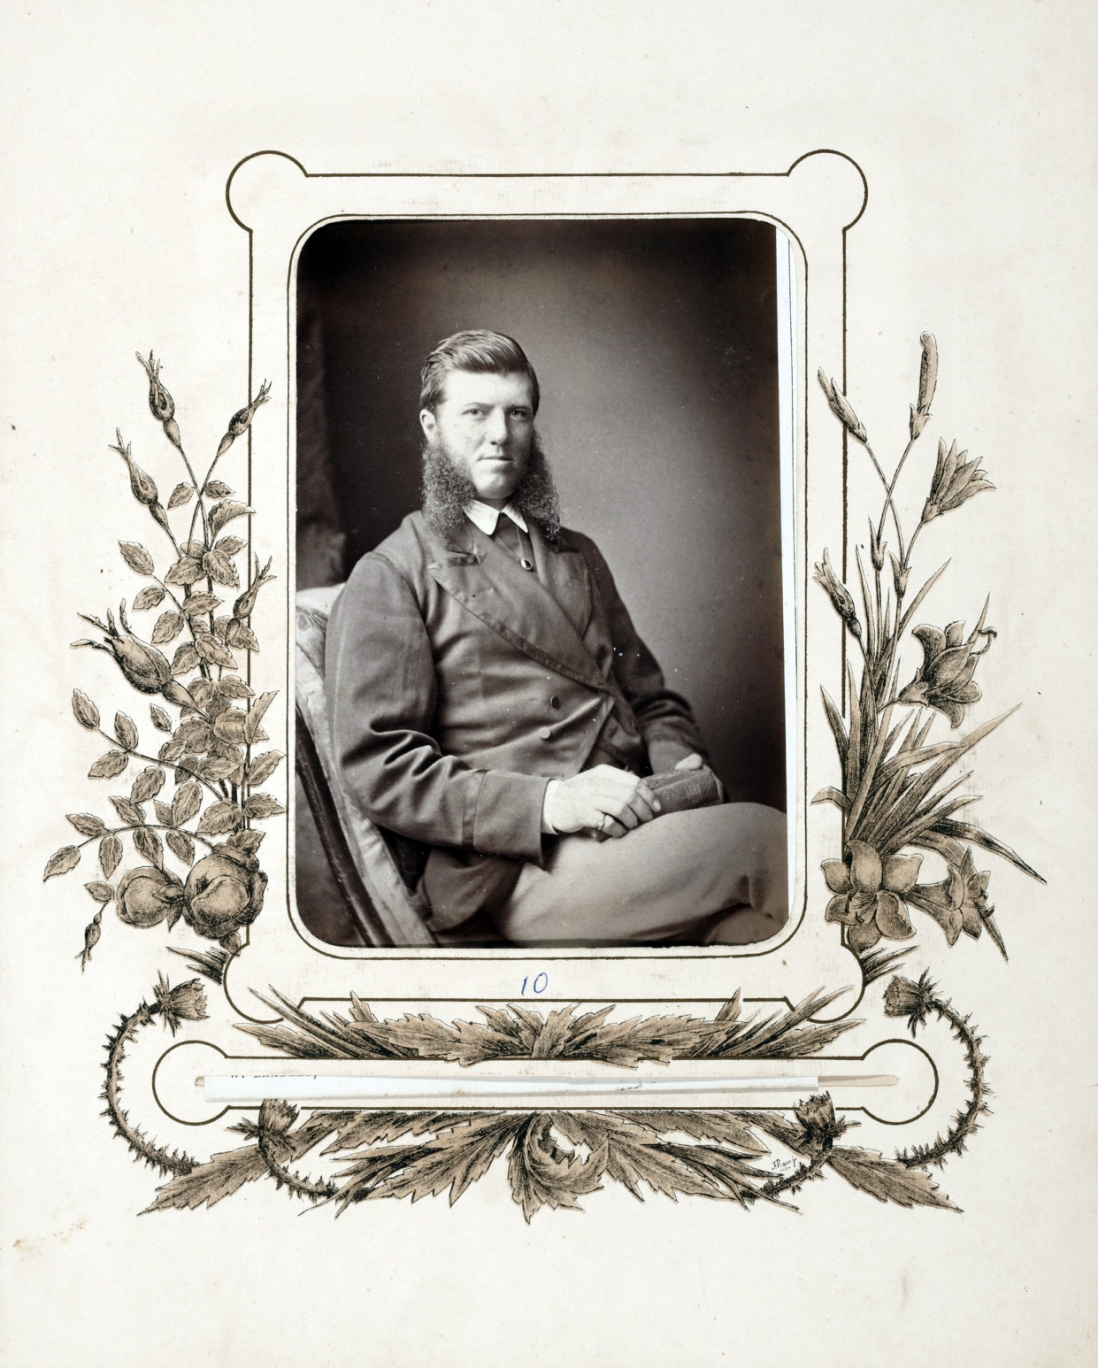 square cornered sepia toned portrait of man seated towards camera right and his face looks directly at the camera. The chair is armless and upholstered, and there is a length of dark fabric hanging behind his right shoulder.